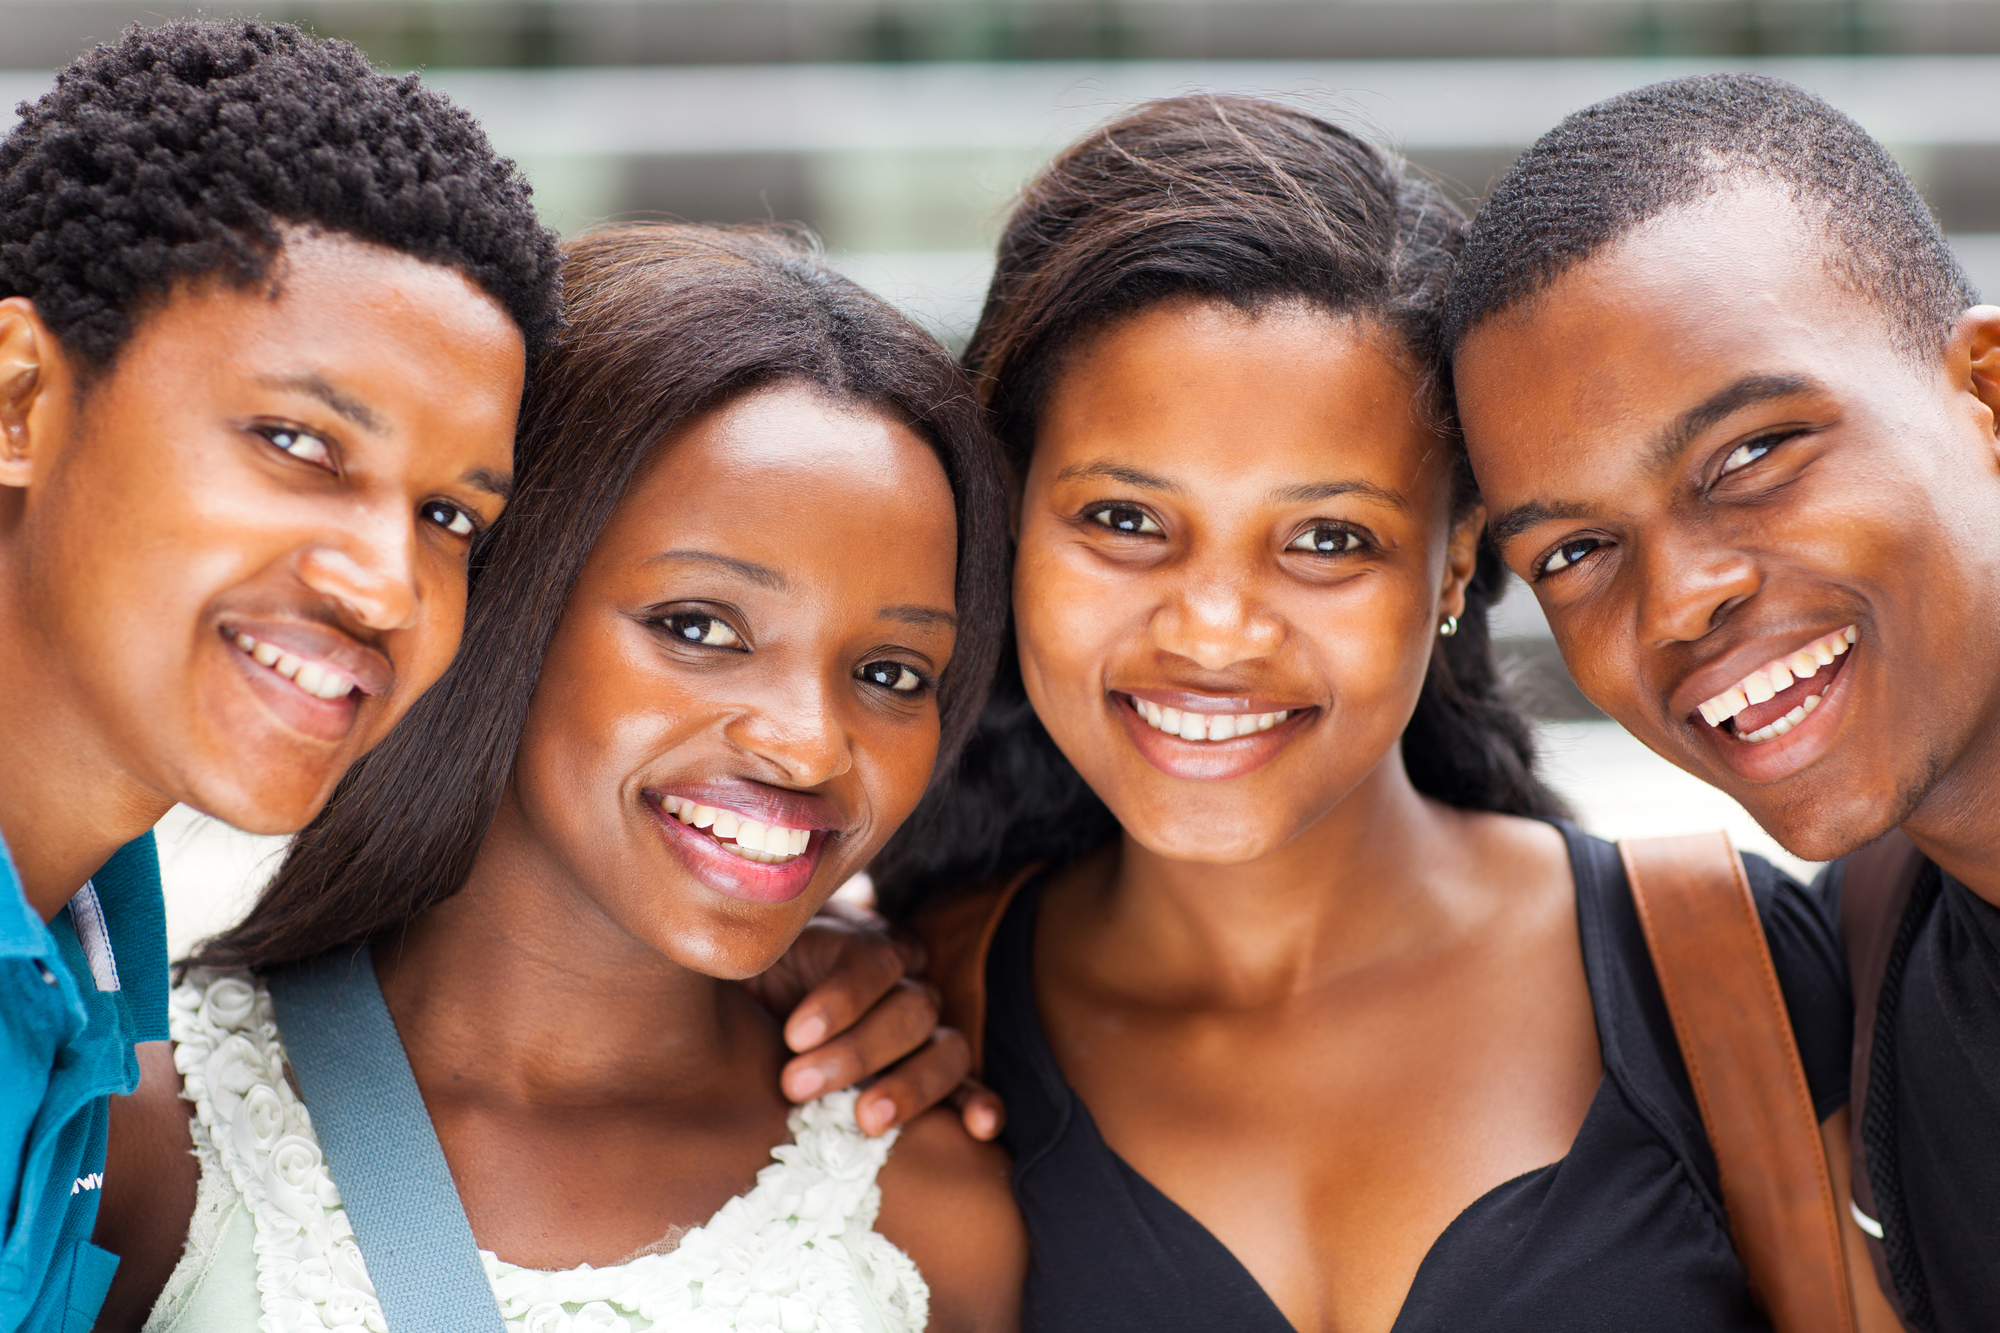 To Develop Africa, Young Africans Must Take Personal Responsibility for Their Lives